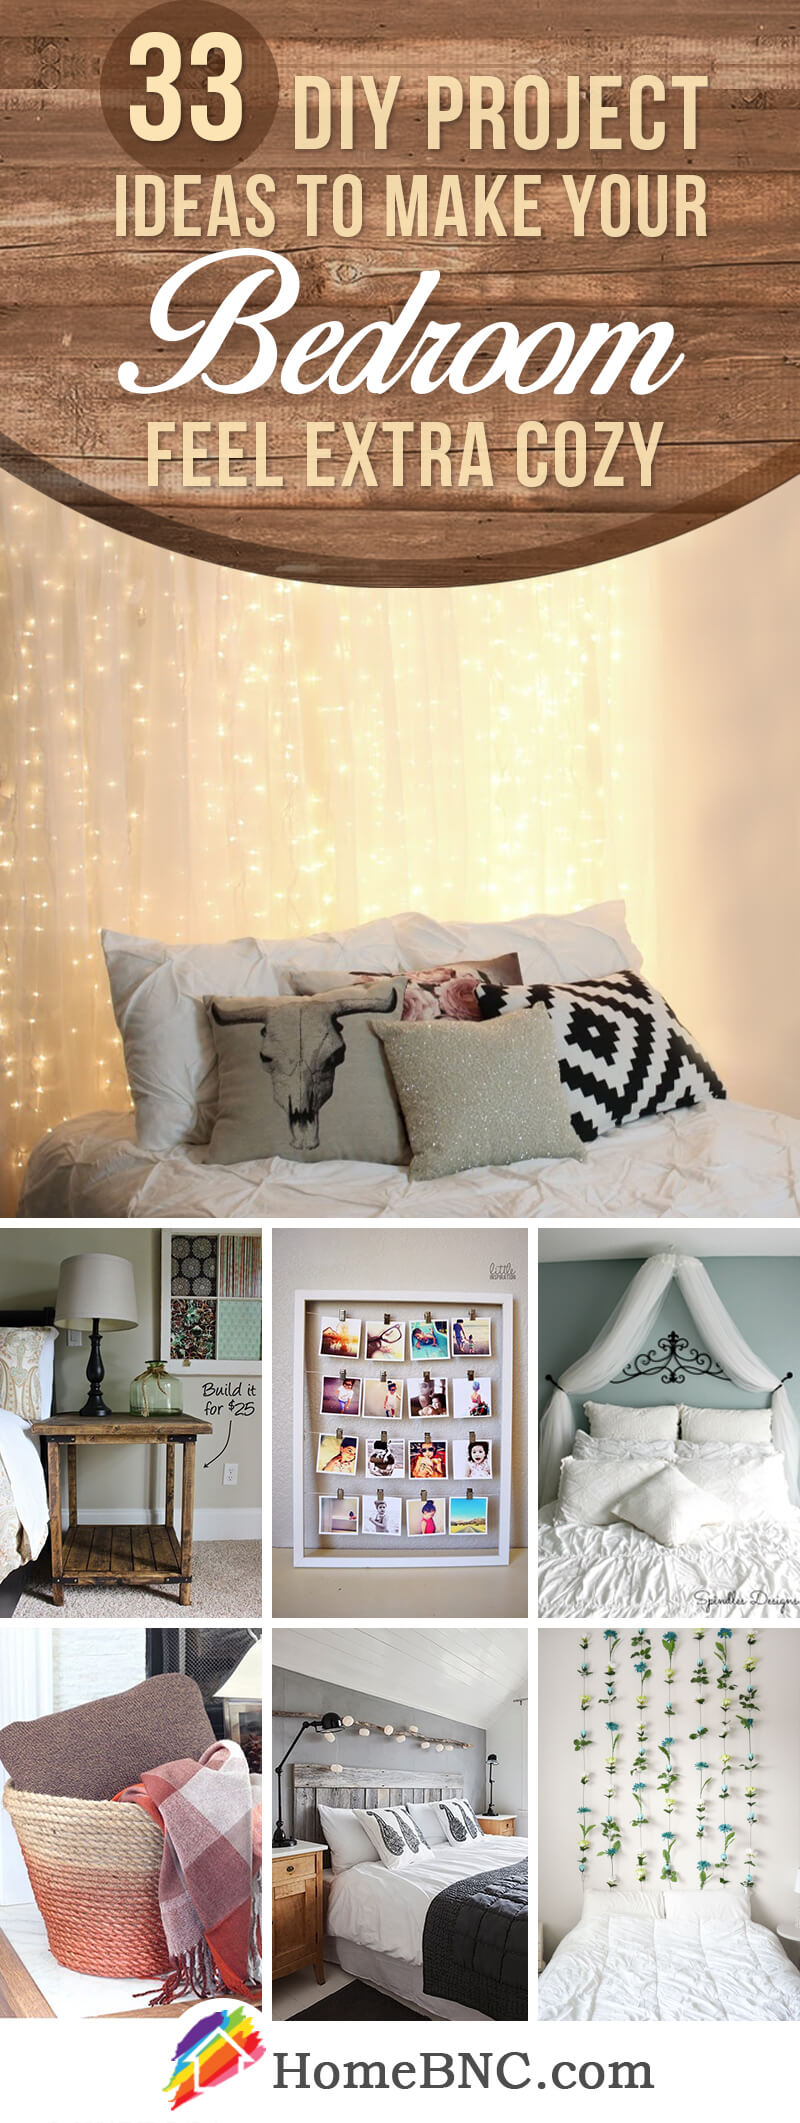 33 Best DIY Cozy Bedroom Project Ideas and Designs for 2019